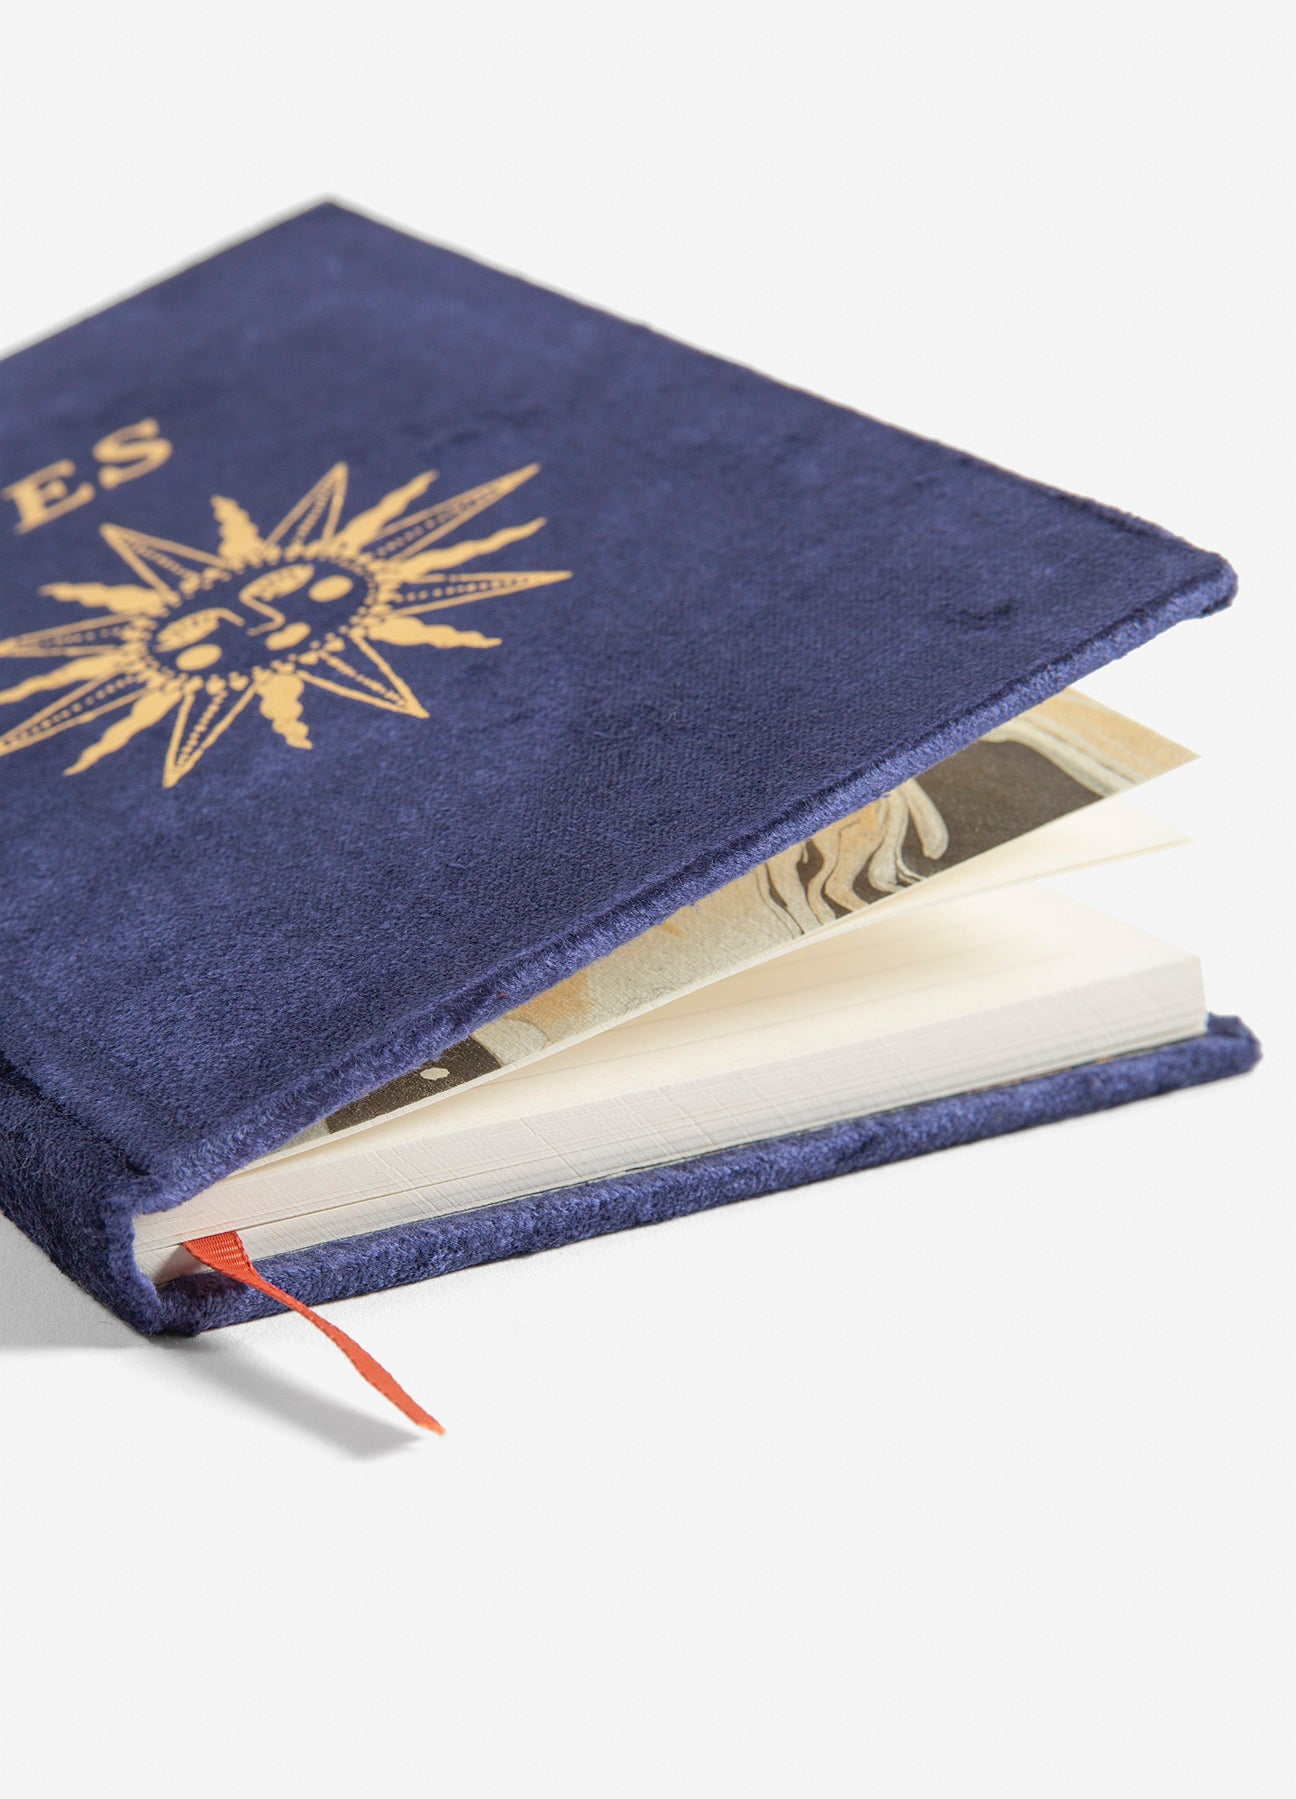 Séance - Slim Velvet Journal - Navy